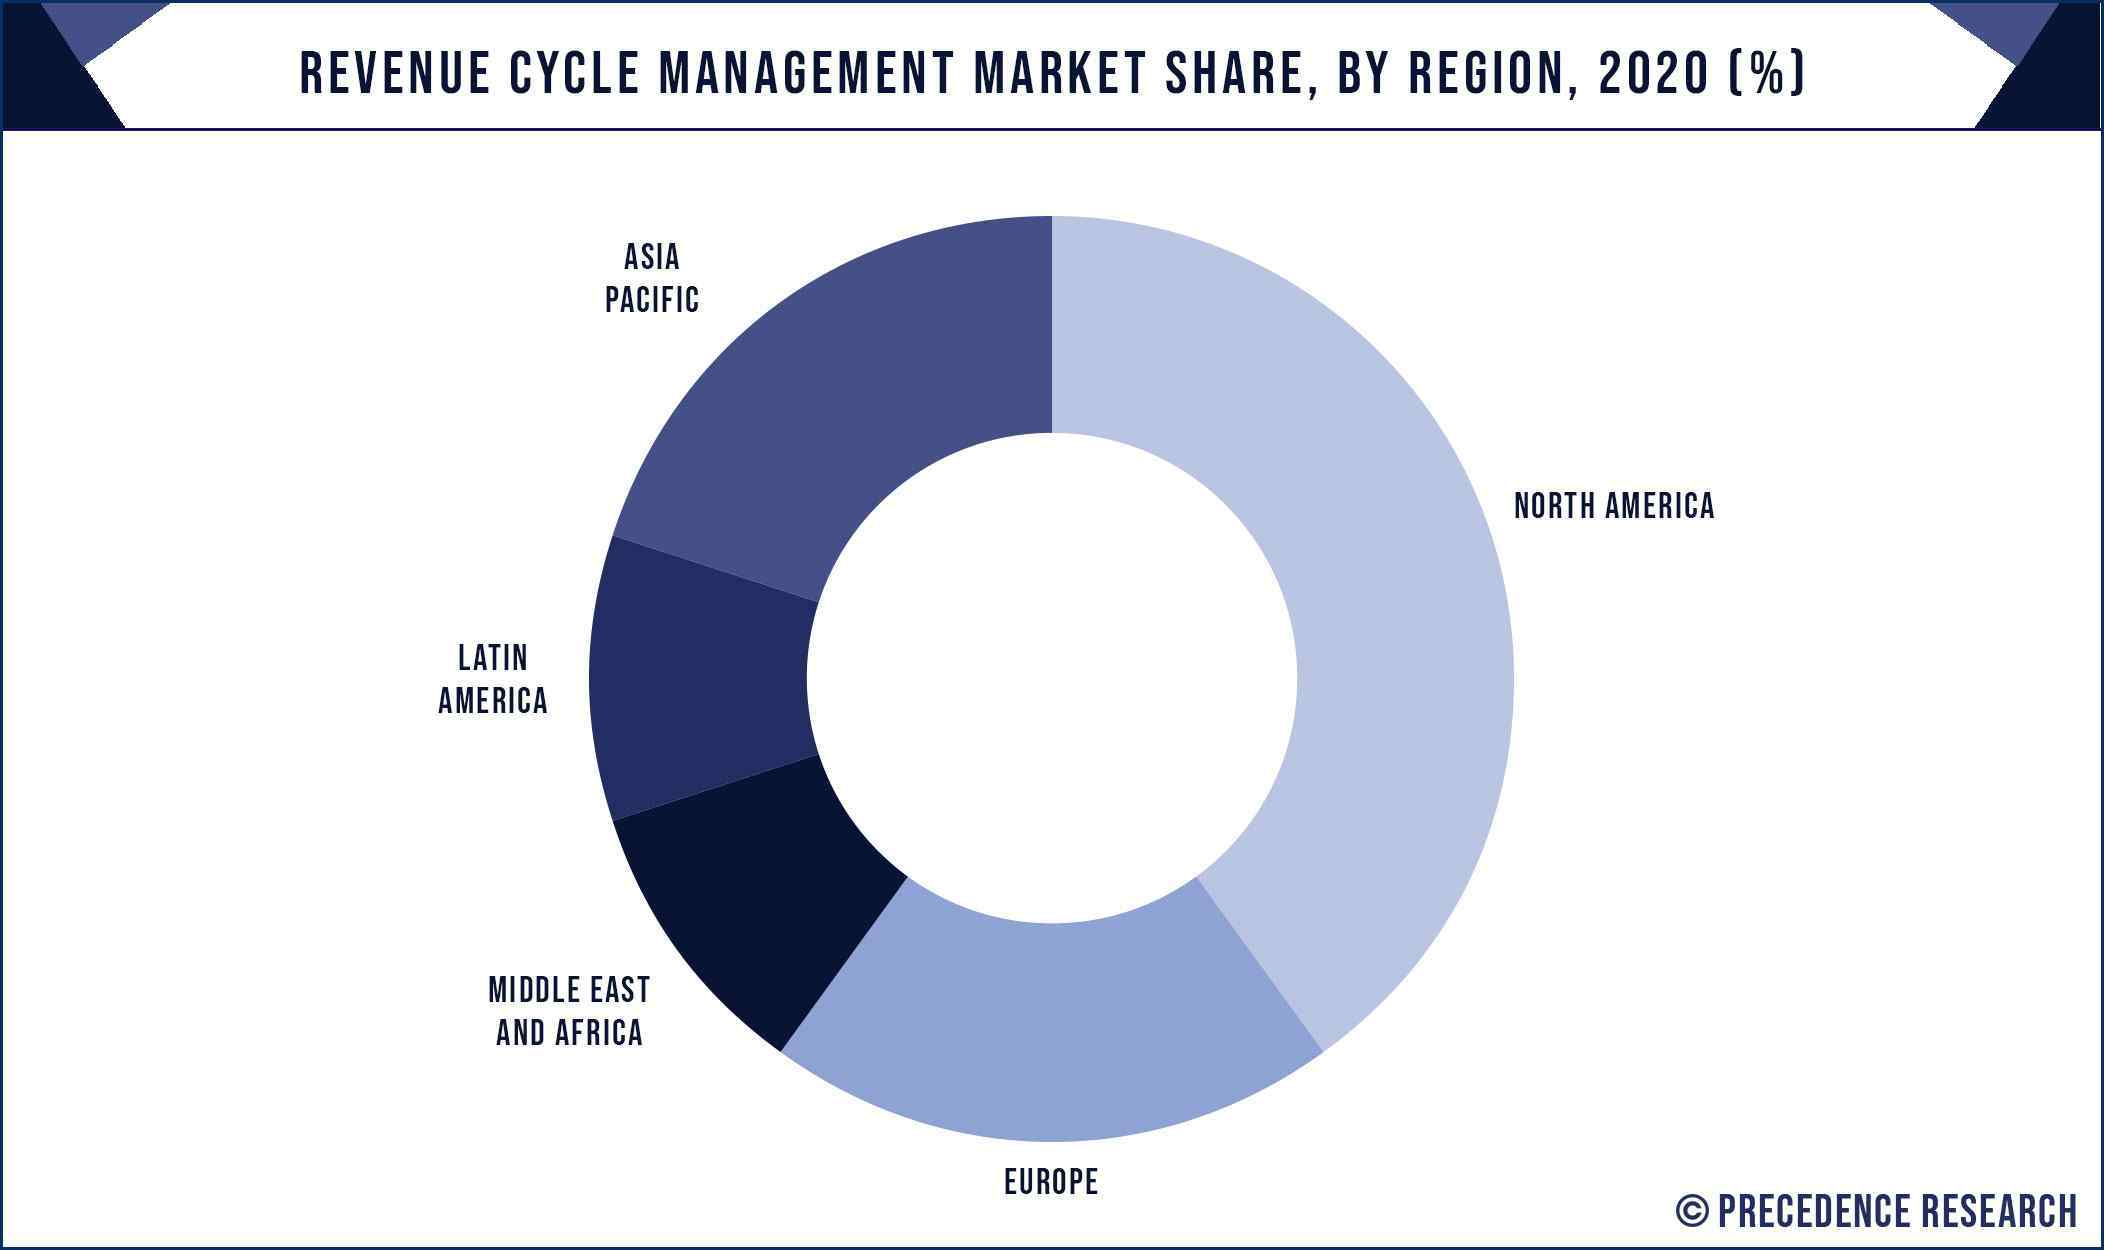 Revenue Cycle Management Market Share, By Region, 2020 (%)